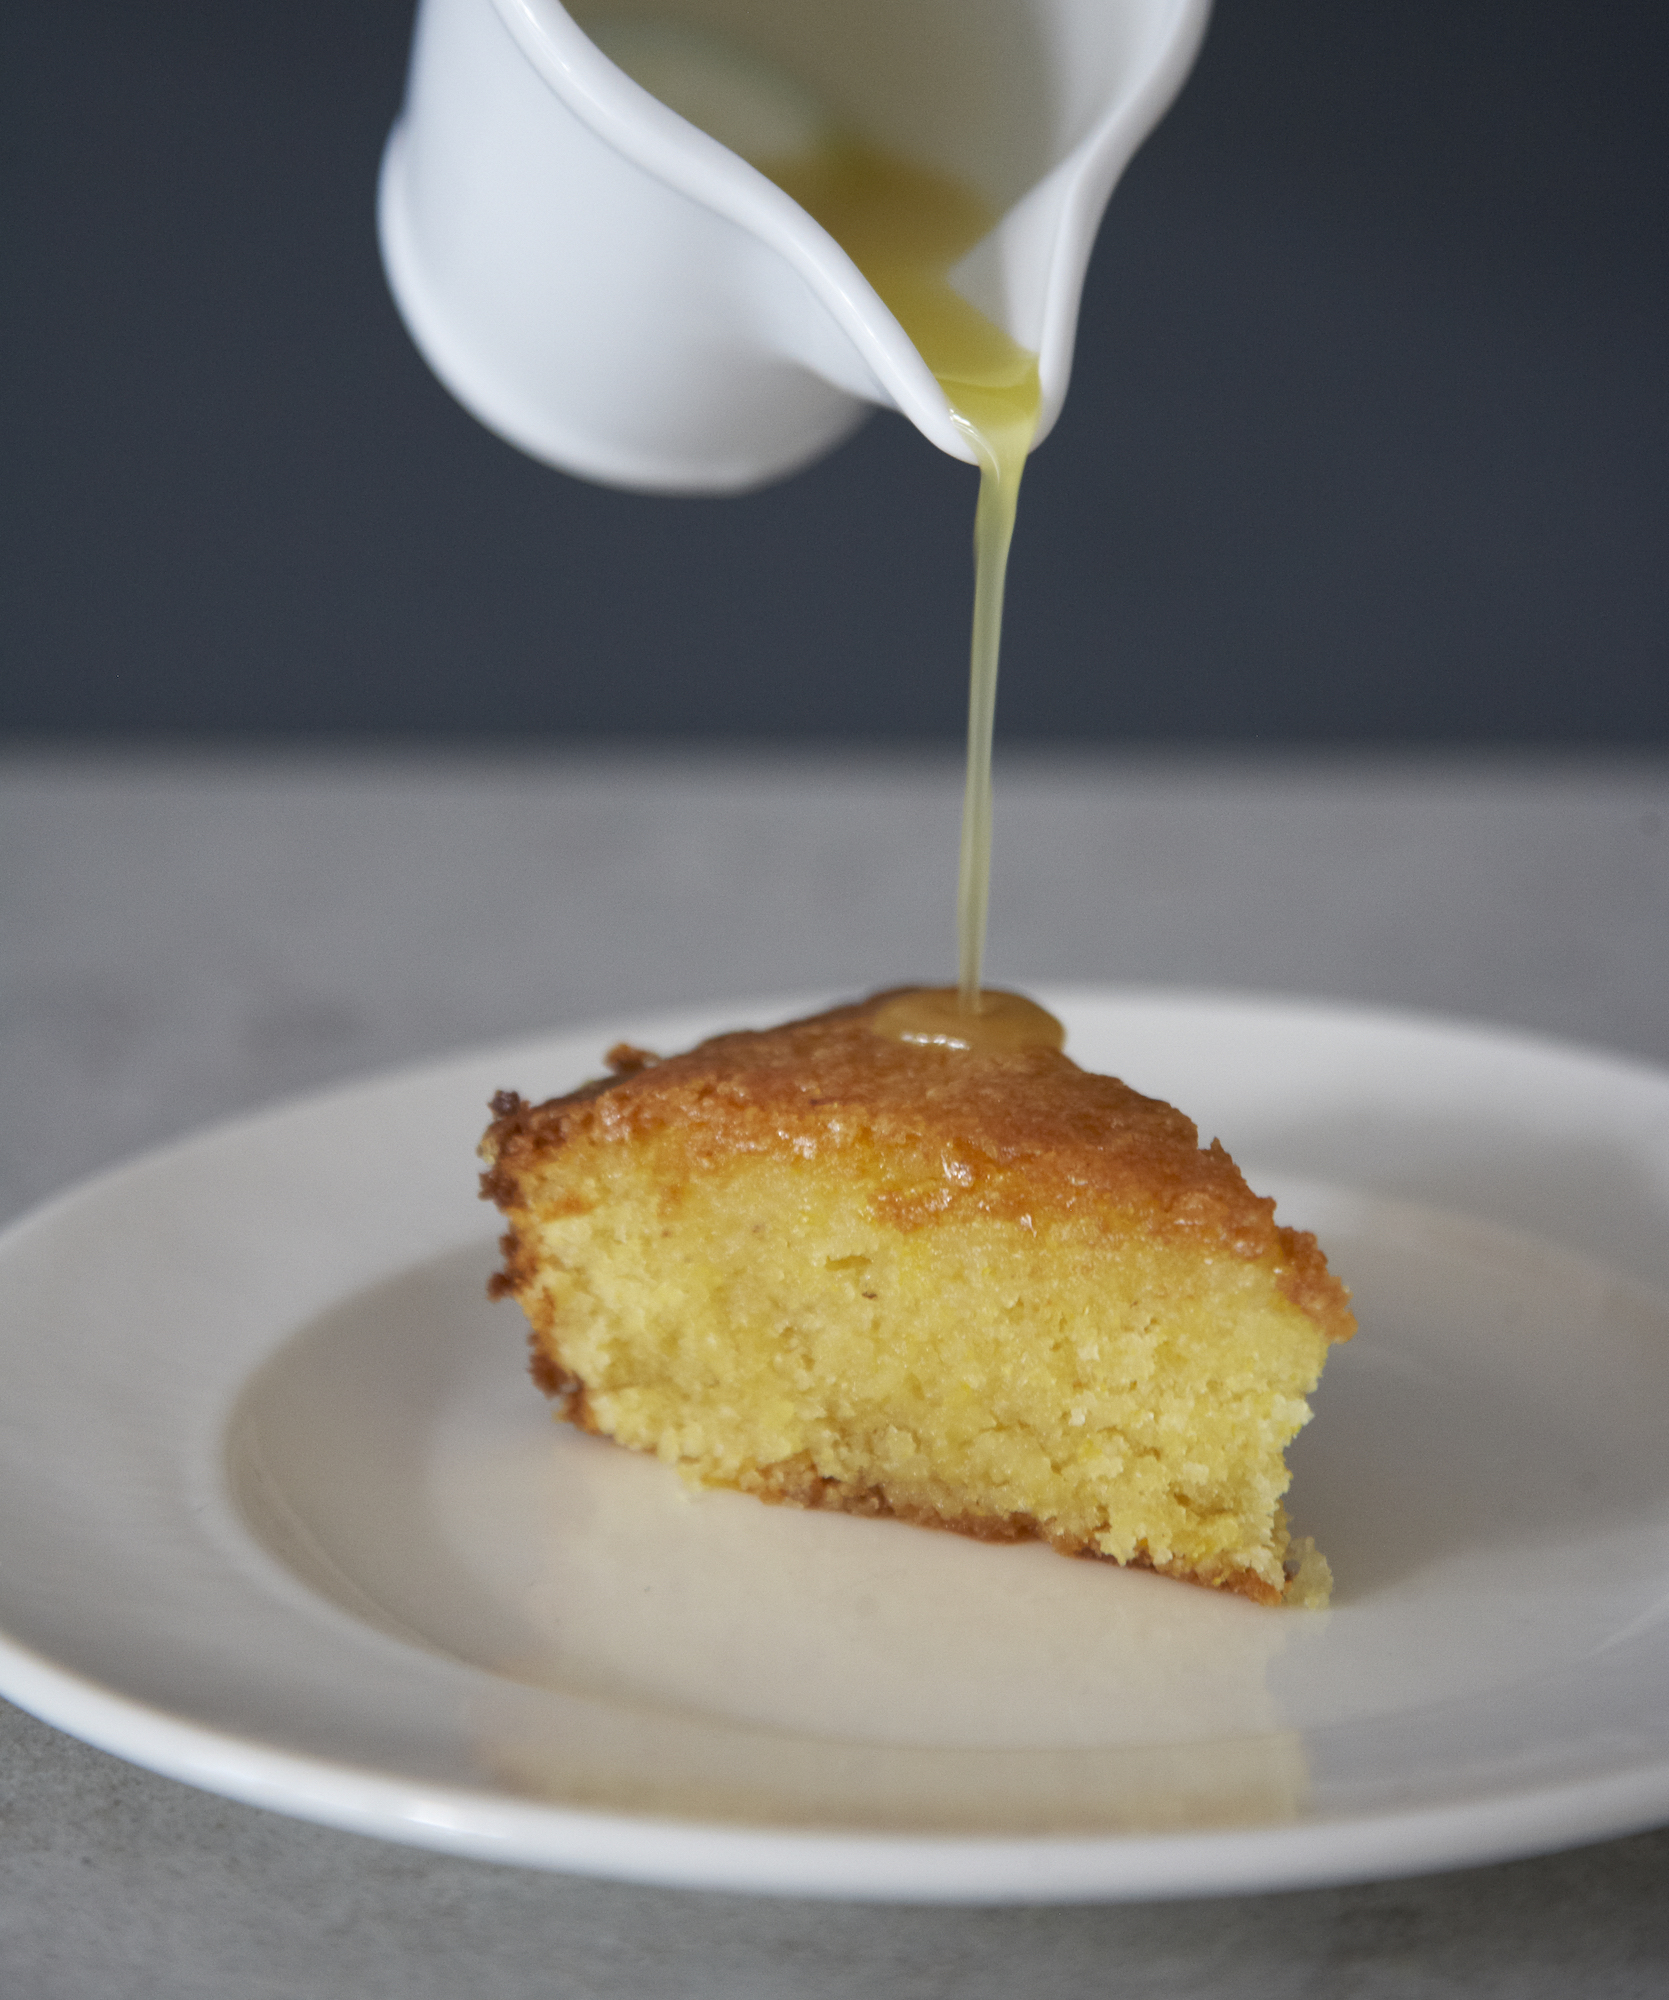 orange-polenta-cake-humphrey-munson-blog-5